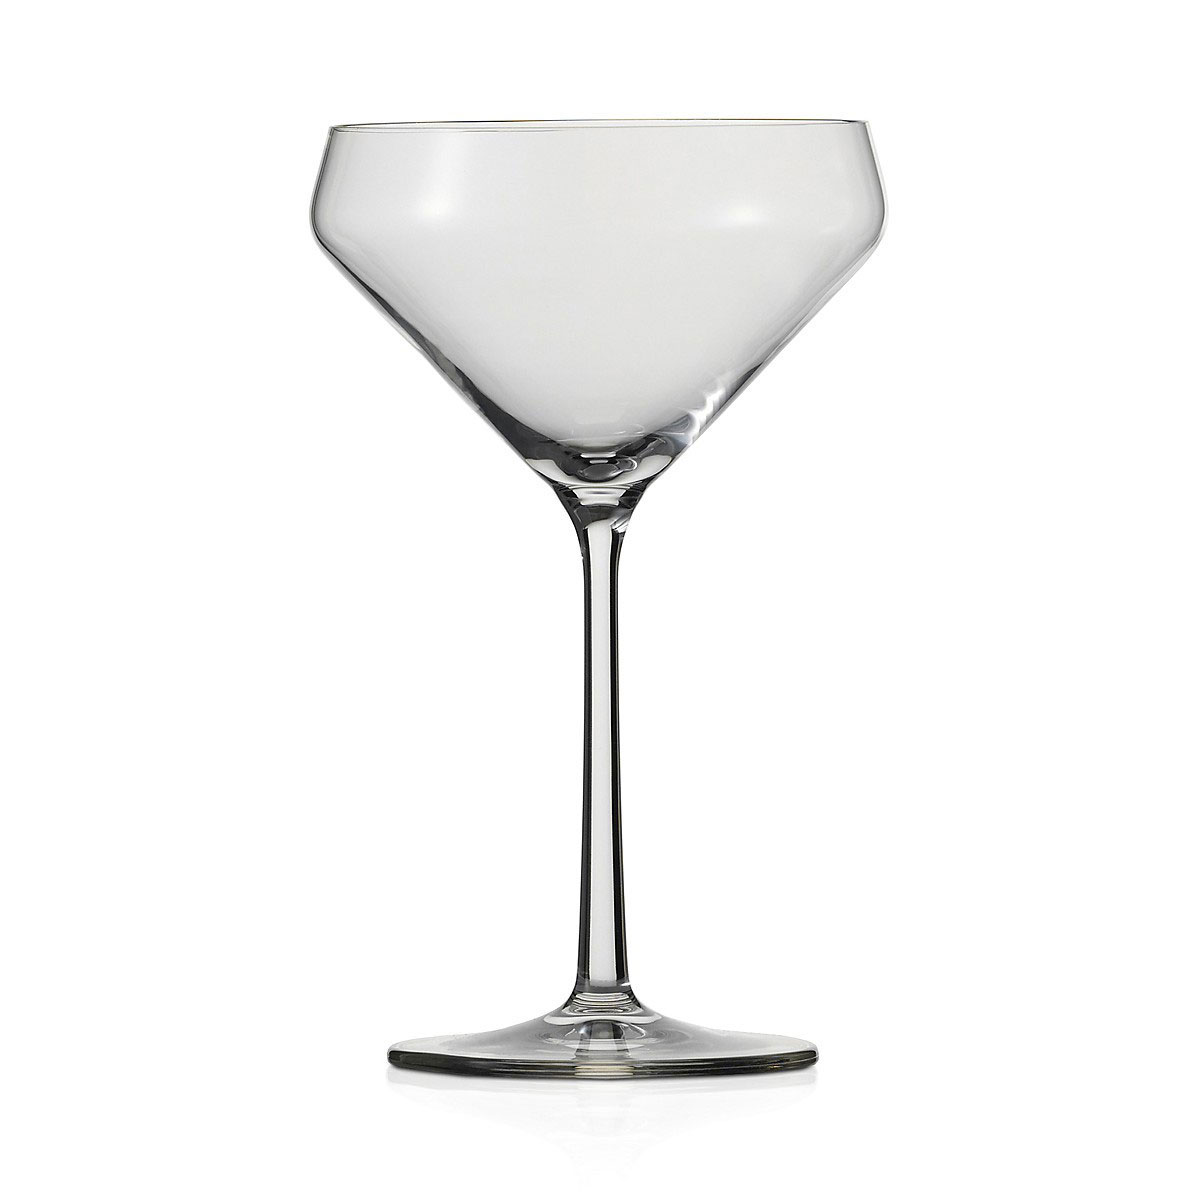 Schott Zwiesel Tritan Crystal, Pure Crystal Martini, Single